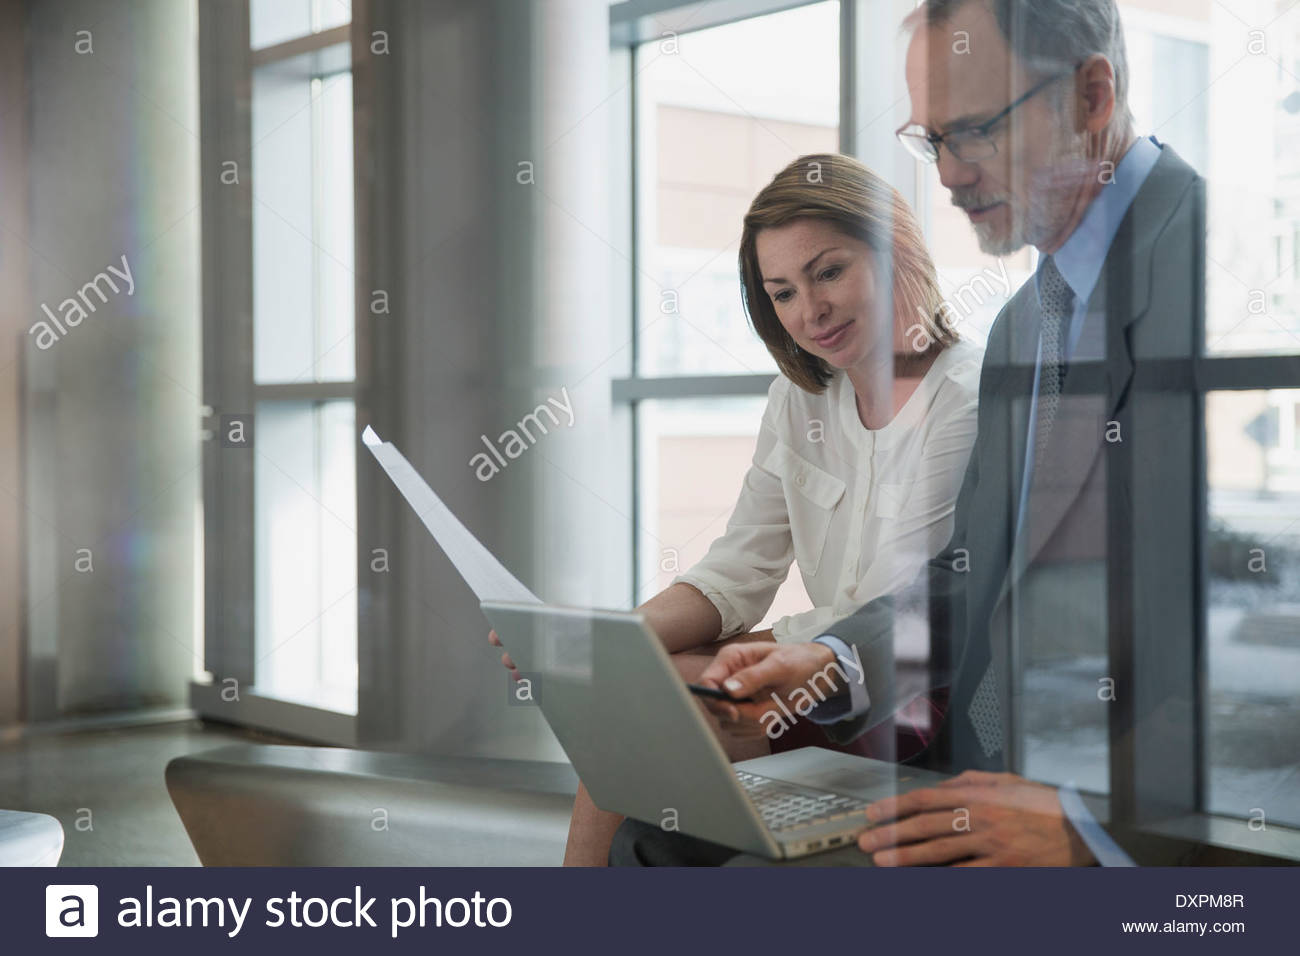 Business people using laptop in meeting - Stock Image